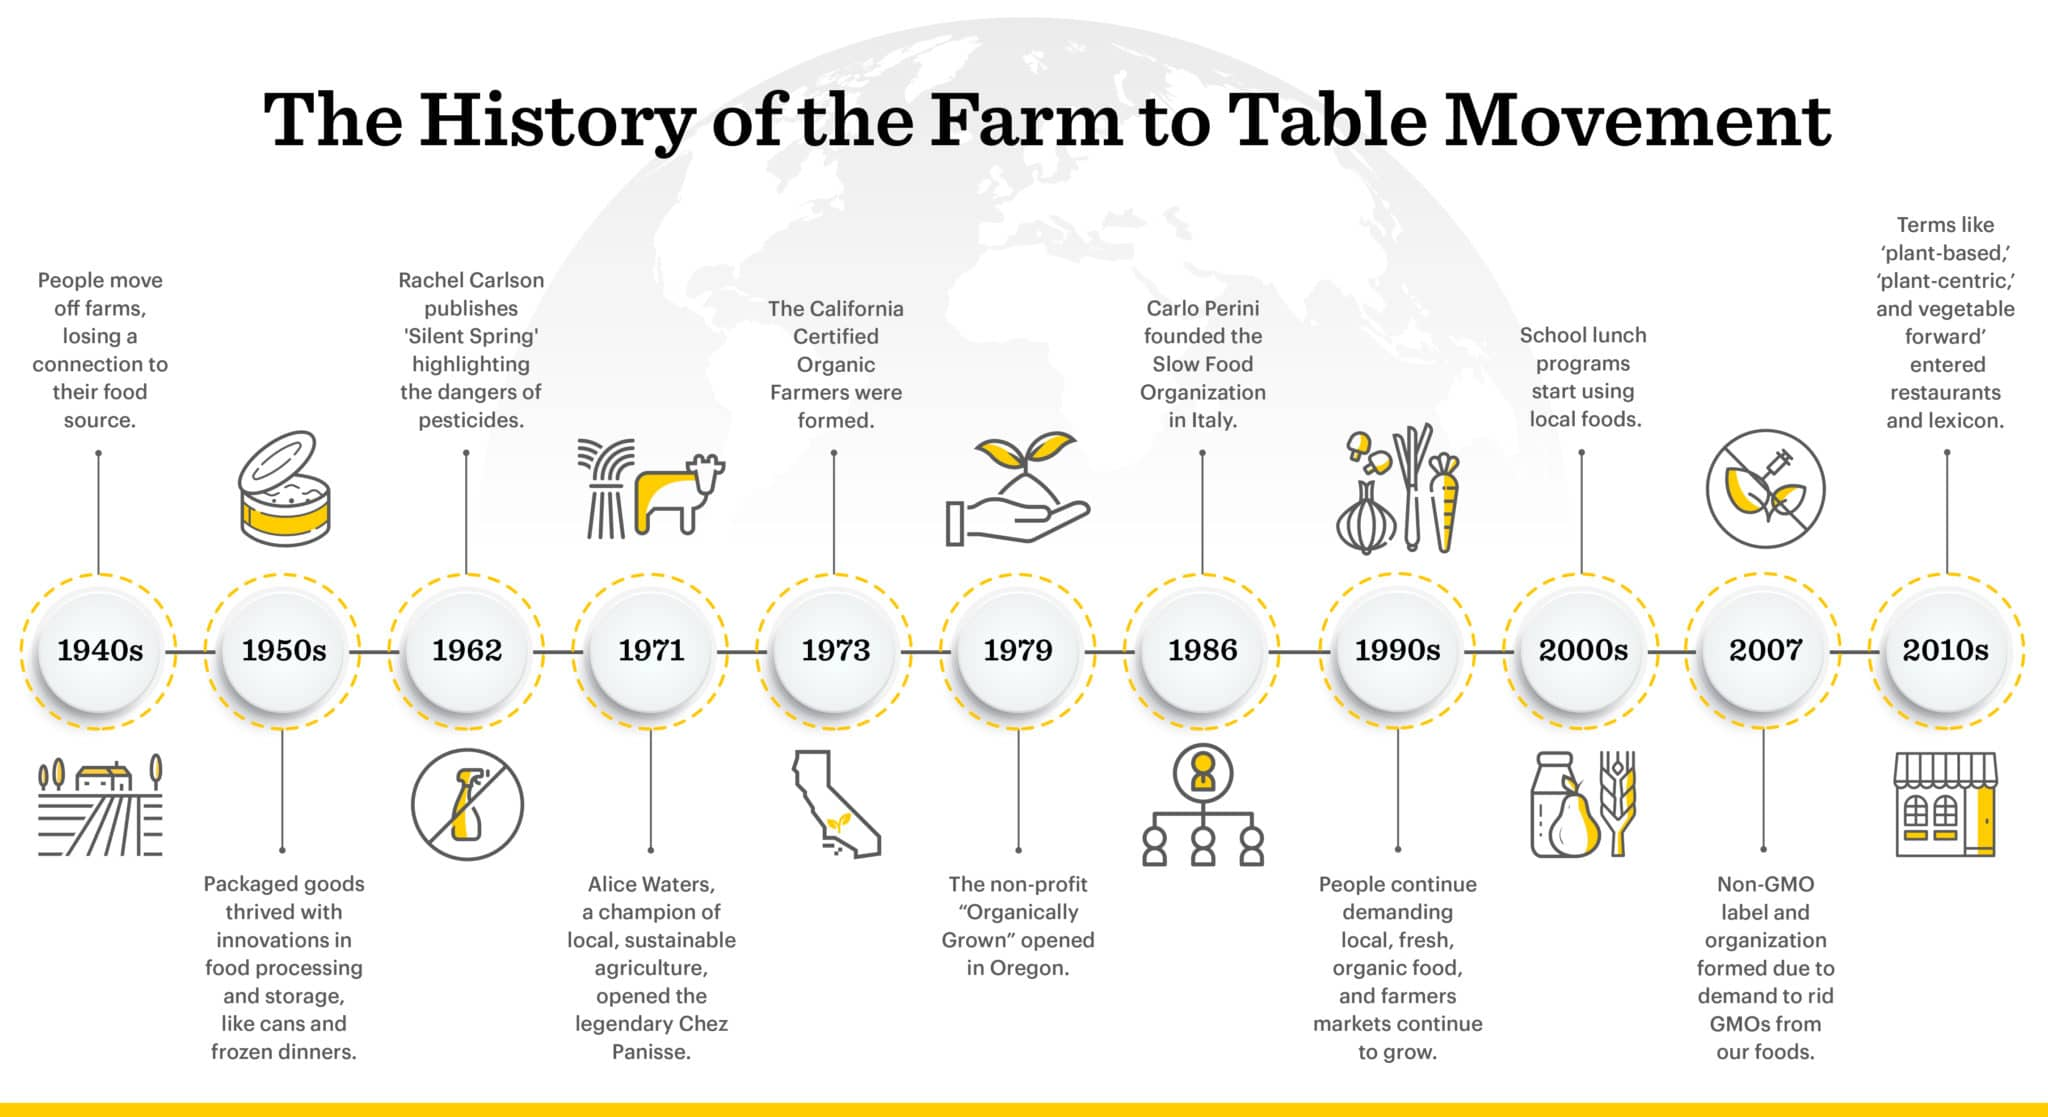 https://upserve.com/media/sites/2/History-of-Farm-to-Table-Movement-Graphic.jpg